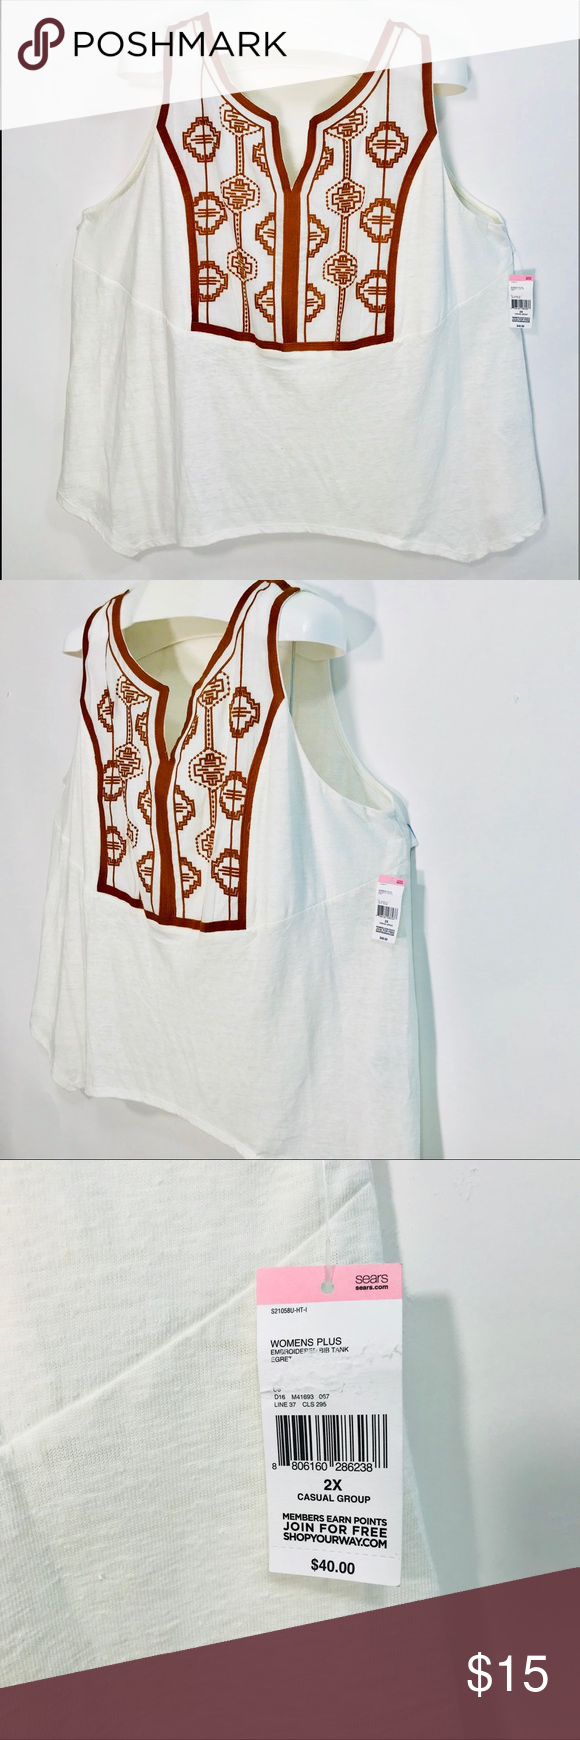 c3b307d03531f Simply Emma Tribal Embroidered Tank Linen Blend Simply Emma Women s Plus  size 2X Tribal Embroidered Tank